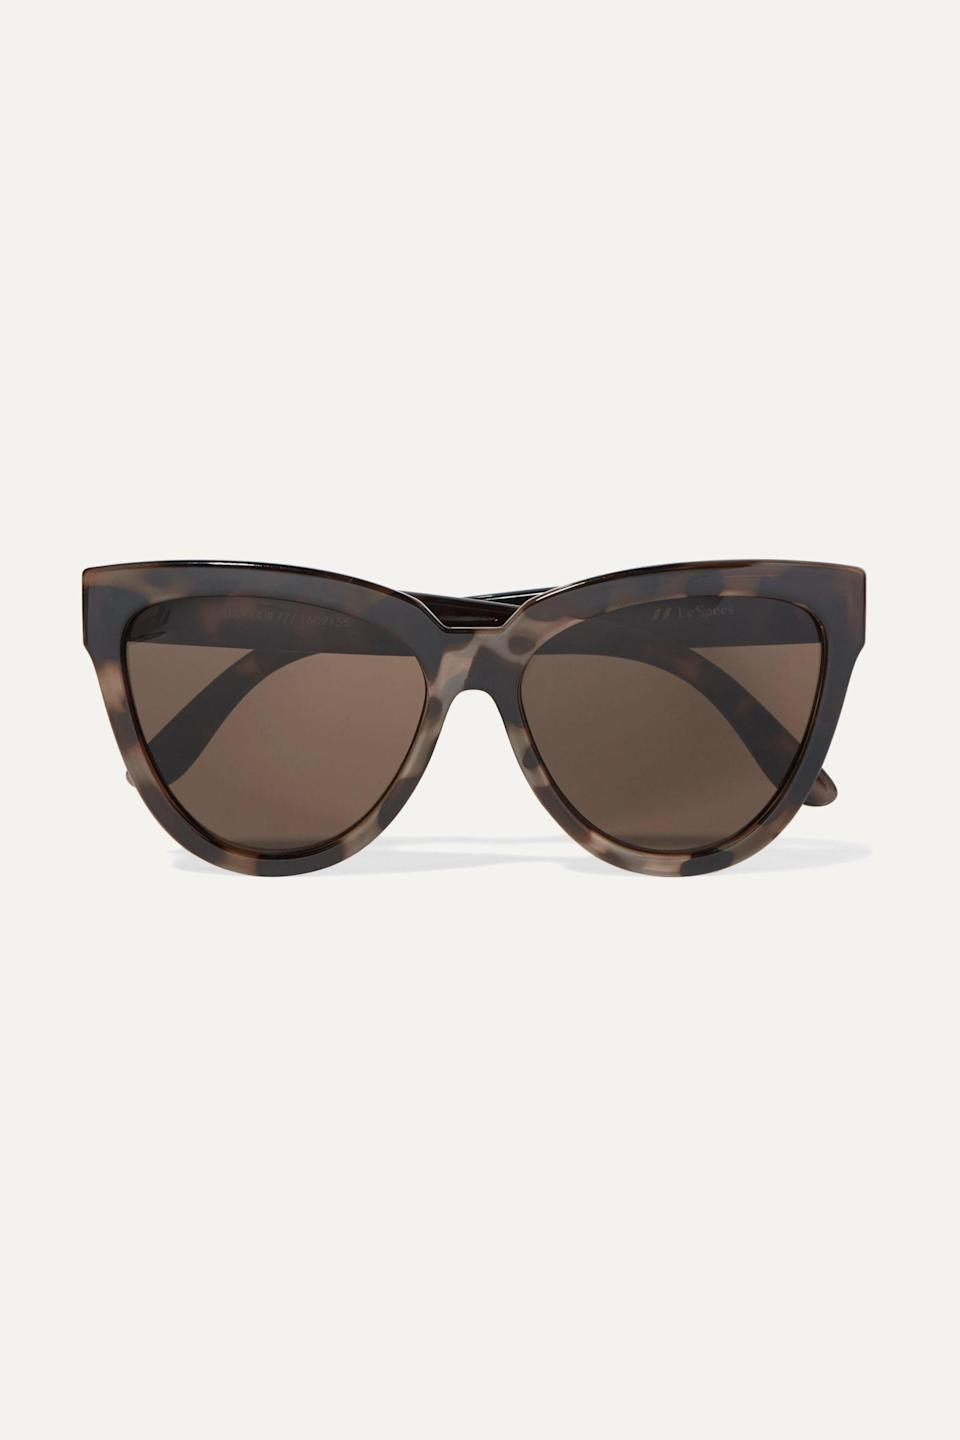 """<p><strong>Le Specs</strong></p><p>net-a-porter.com</p><p><strong>$60.00</strong></p><p><a href=""""https://go.redirectingat.com?id=74968X1596630&url=https%3A%2F%2Fwww.net-a-porter.com%2Fen-us%2Fshop%2Fproduct%2Fle-specs%2Fliar-lair-cat-eye-tortoiseshell-acetate-sunglasses%2F912467&sref=https%3A%2F%2Fwww.townandcountrymag.com%2Fstyle%2Ffashion-trends%2Fg36049858%2Fmeghan-markle-sunglasses%2F"""" rel=""""nofollow noopener"""" target=""""_blank"""" data-ylk=""""slk:SHOP NOW"""" class=""""link rapid-noclick-resp"""">SHOP NOW</a></p><p>Maybe you want to be more out-of-the-box and are looking to try sunglasses that aren't just big and black, but you still want that muted aesthetic. We suggest these ones that still have the cat-eye style, but come in a brown-and-grey finish.</p>"""